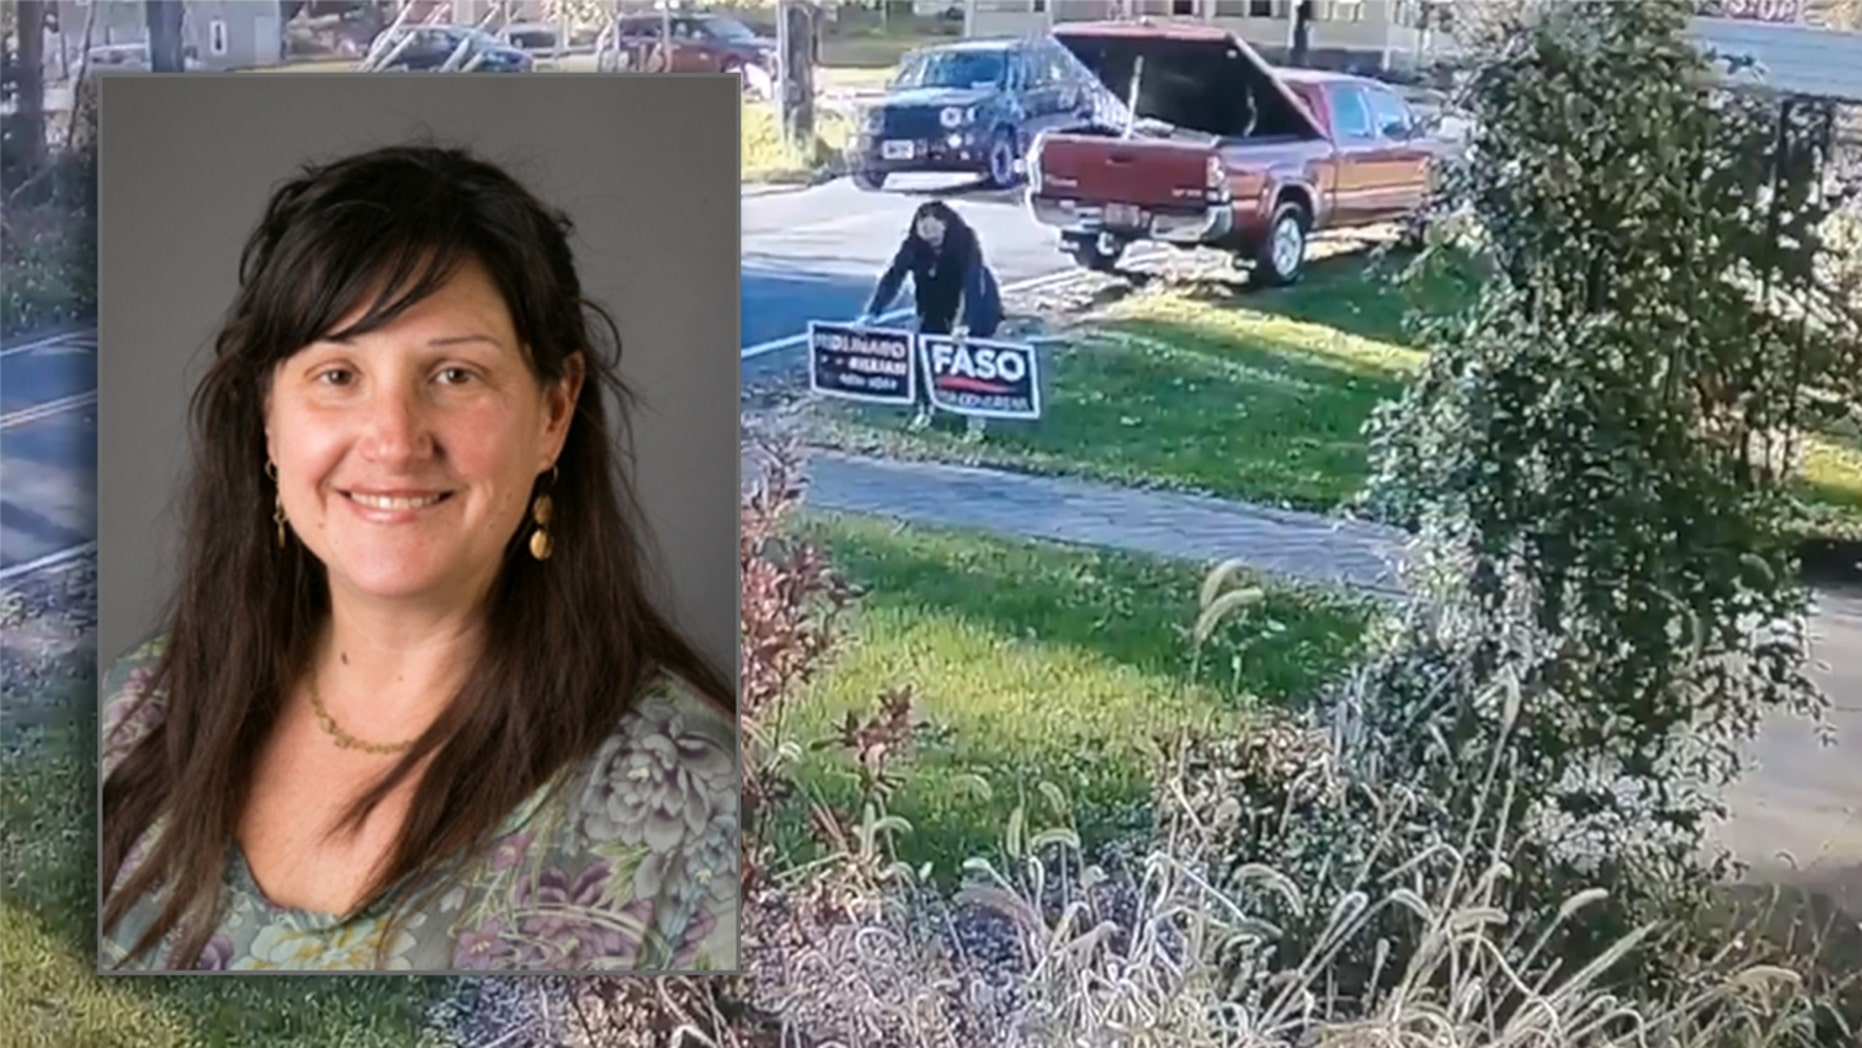 Laura Ebert, a SUNY New Paltz economics professor, was caught on camera stealing Republican yards signs from another person's yard Oct. 30.